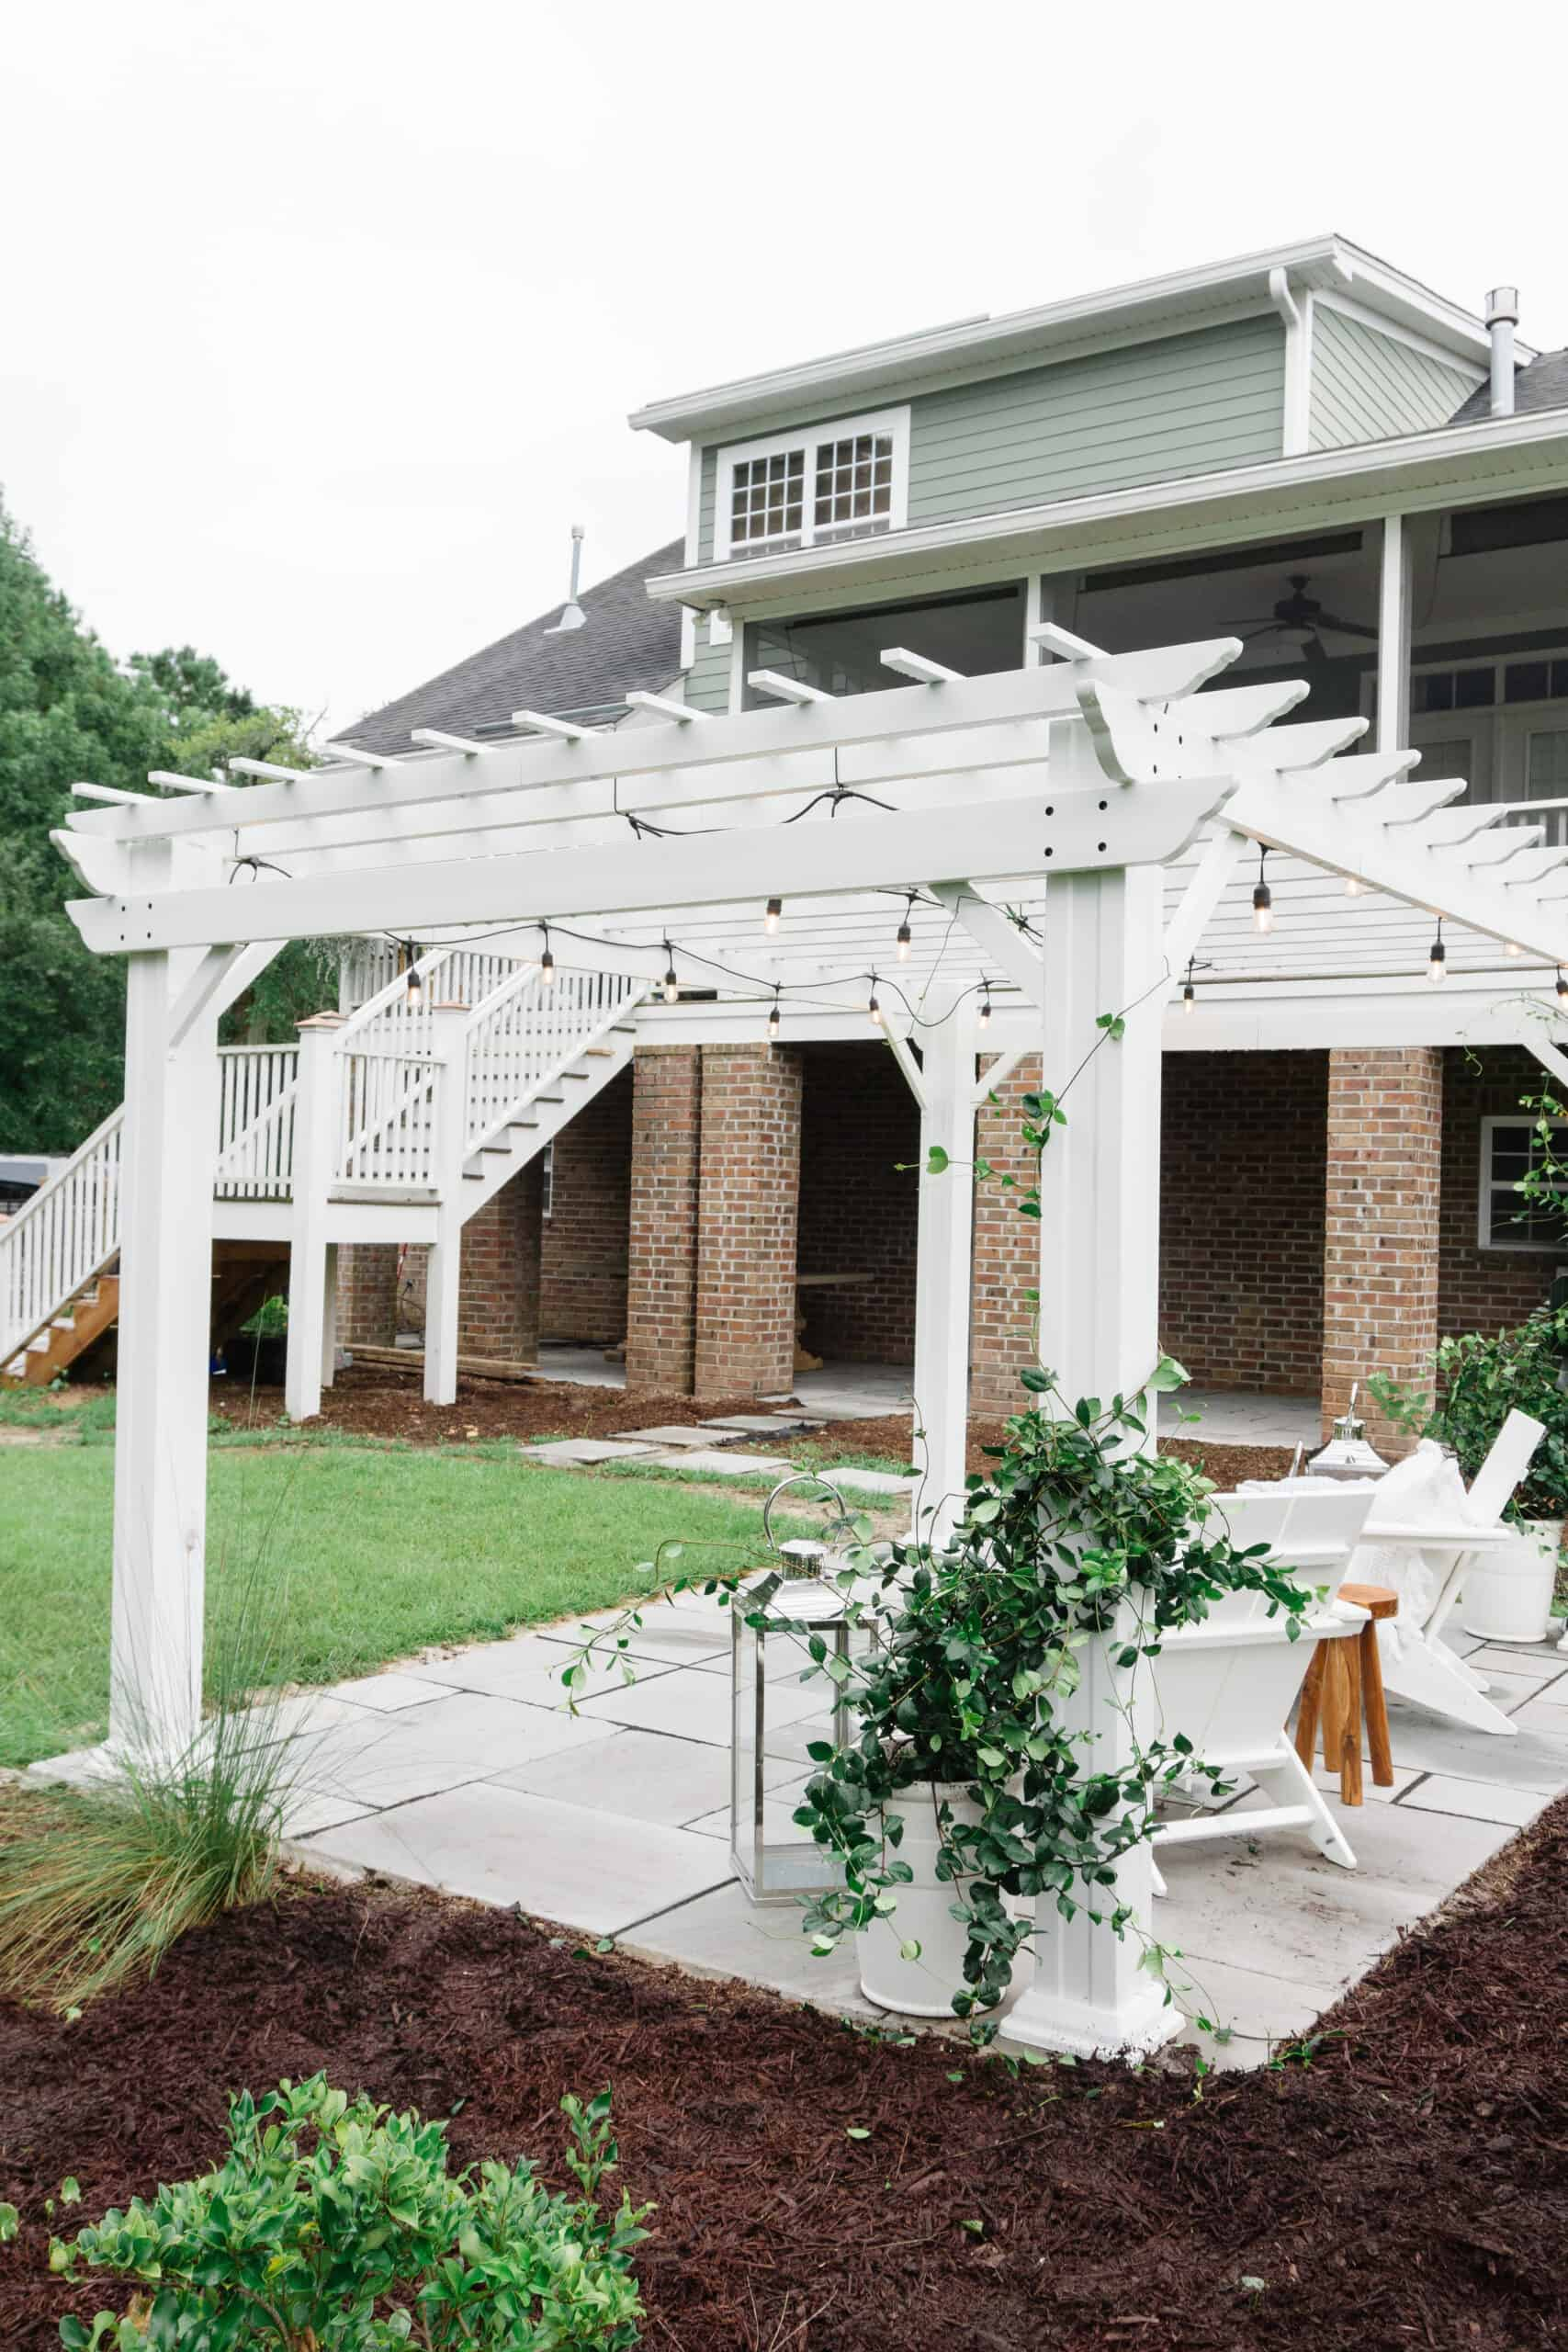 White pergola with lights behind house.